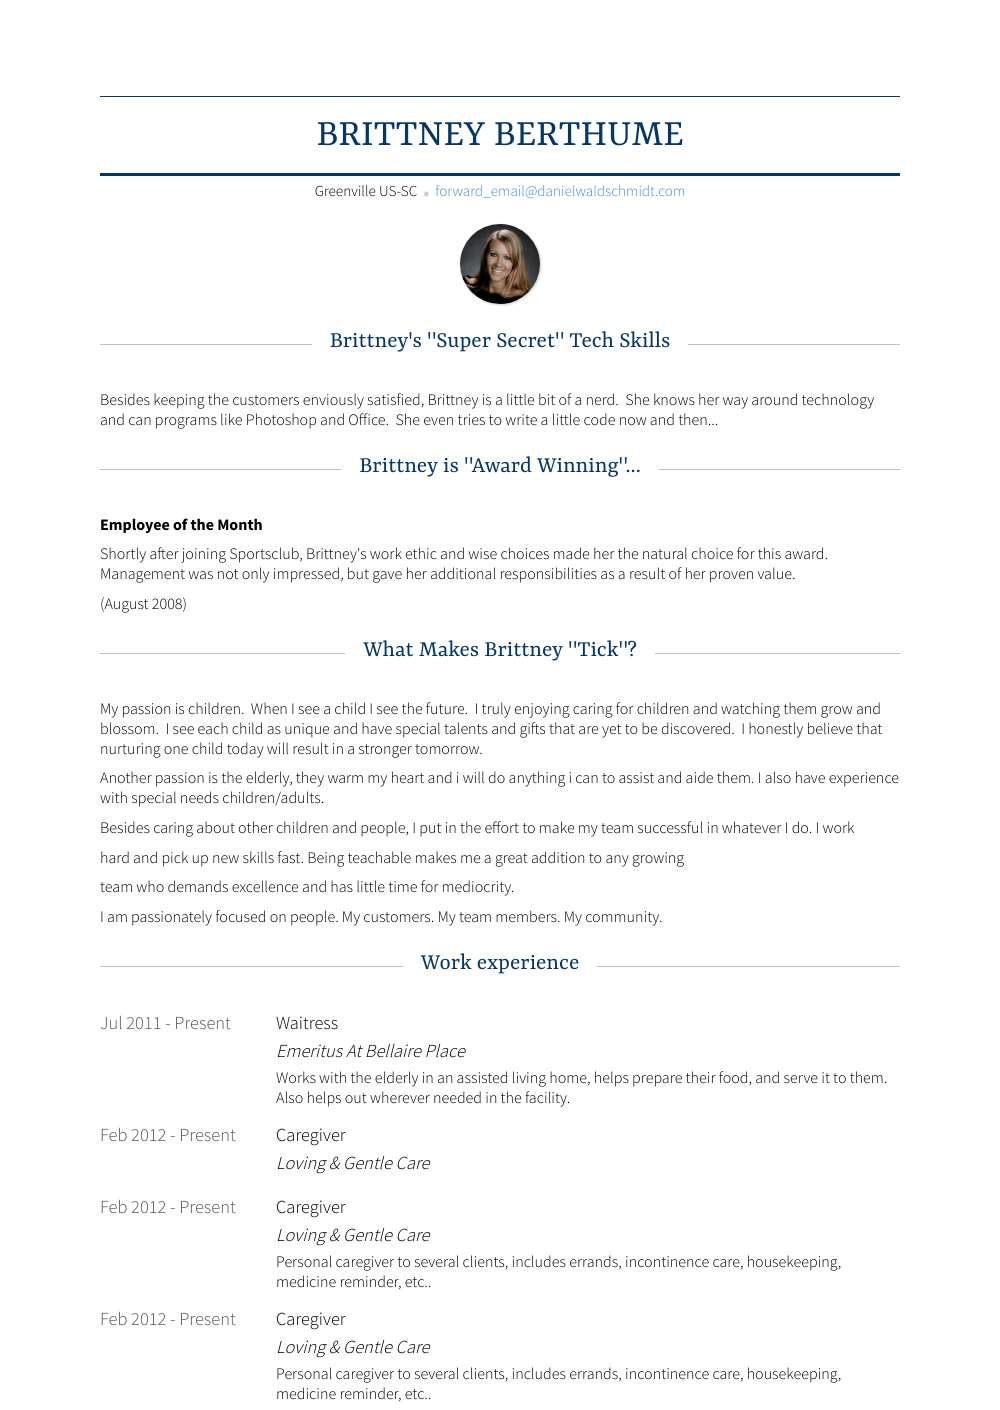 Caregiver - Resume Samples & Templates | VisualCV